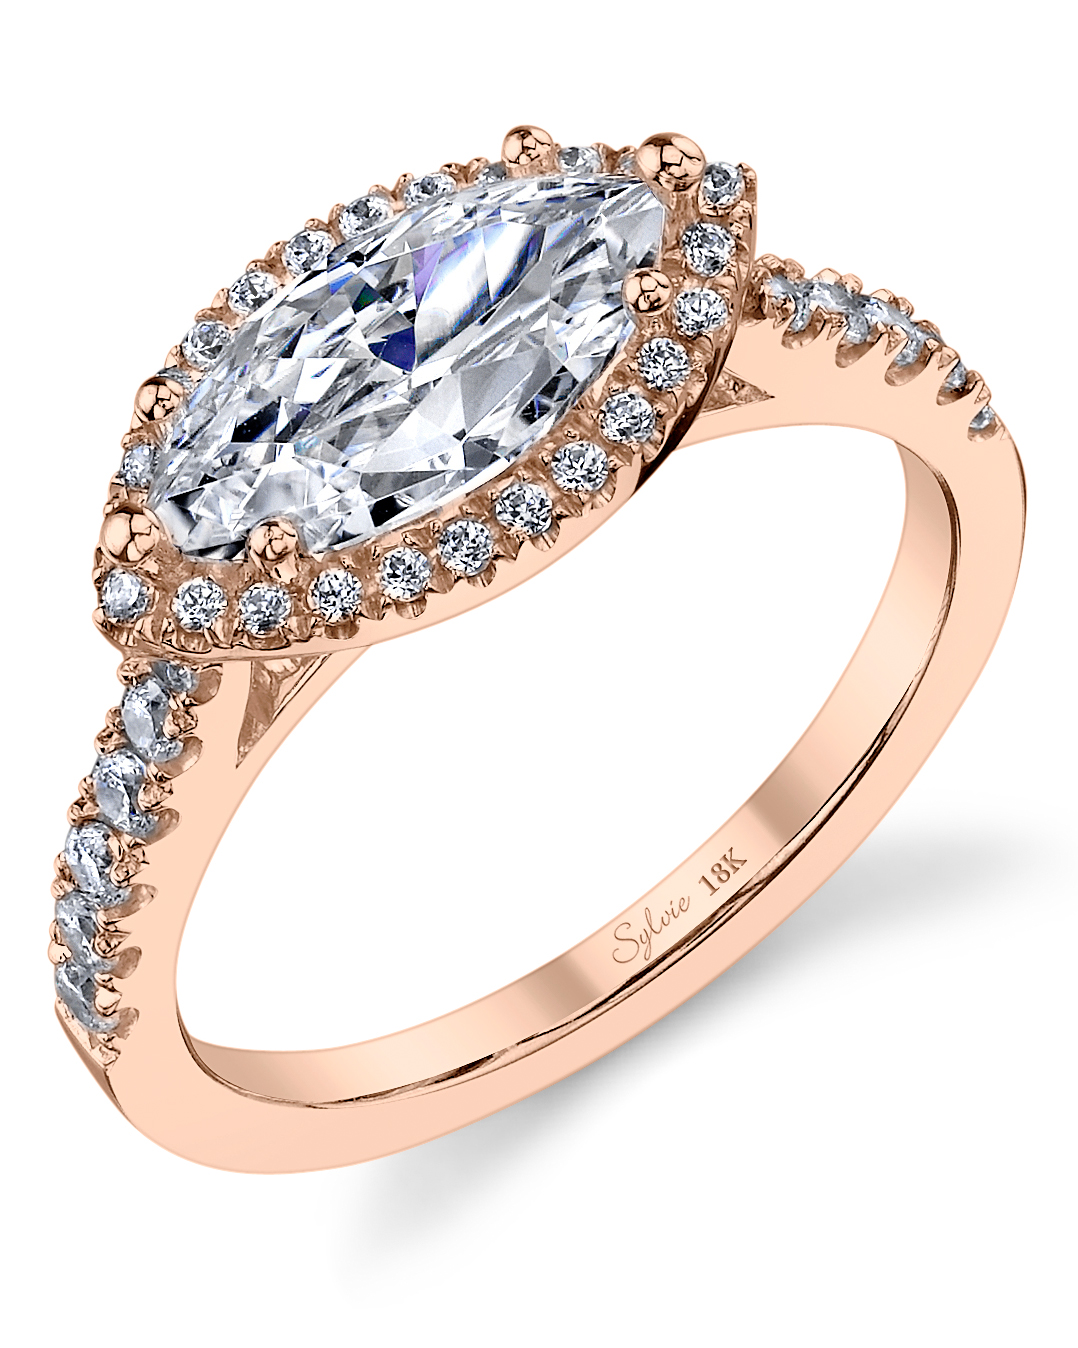 sylvie-collection-rose-gold-marquise-east-west-engagement-ring-0816.jpg